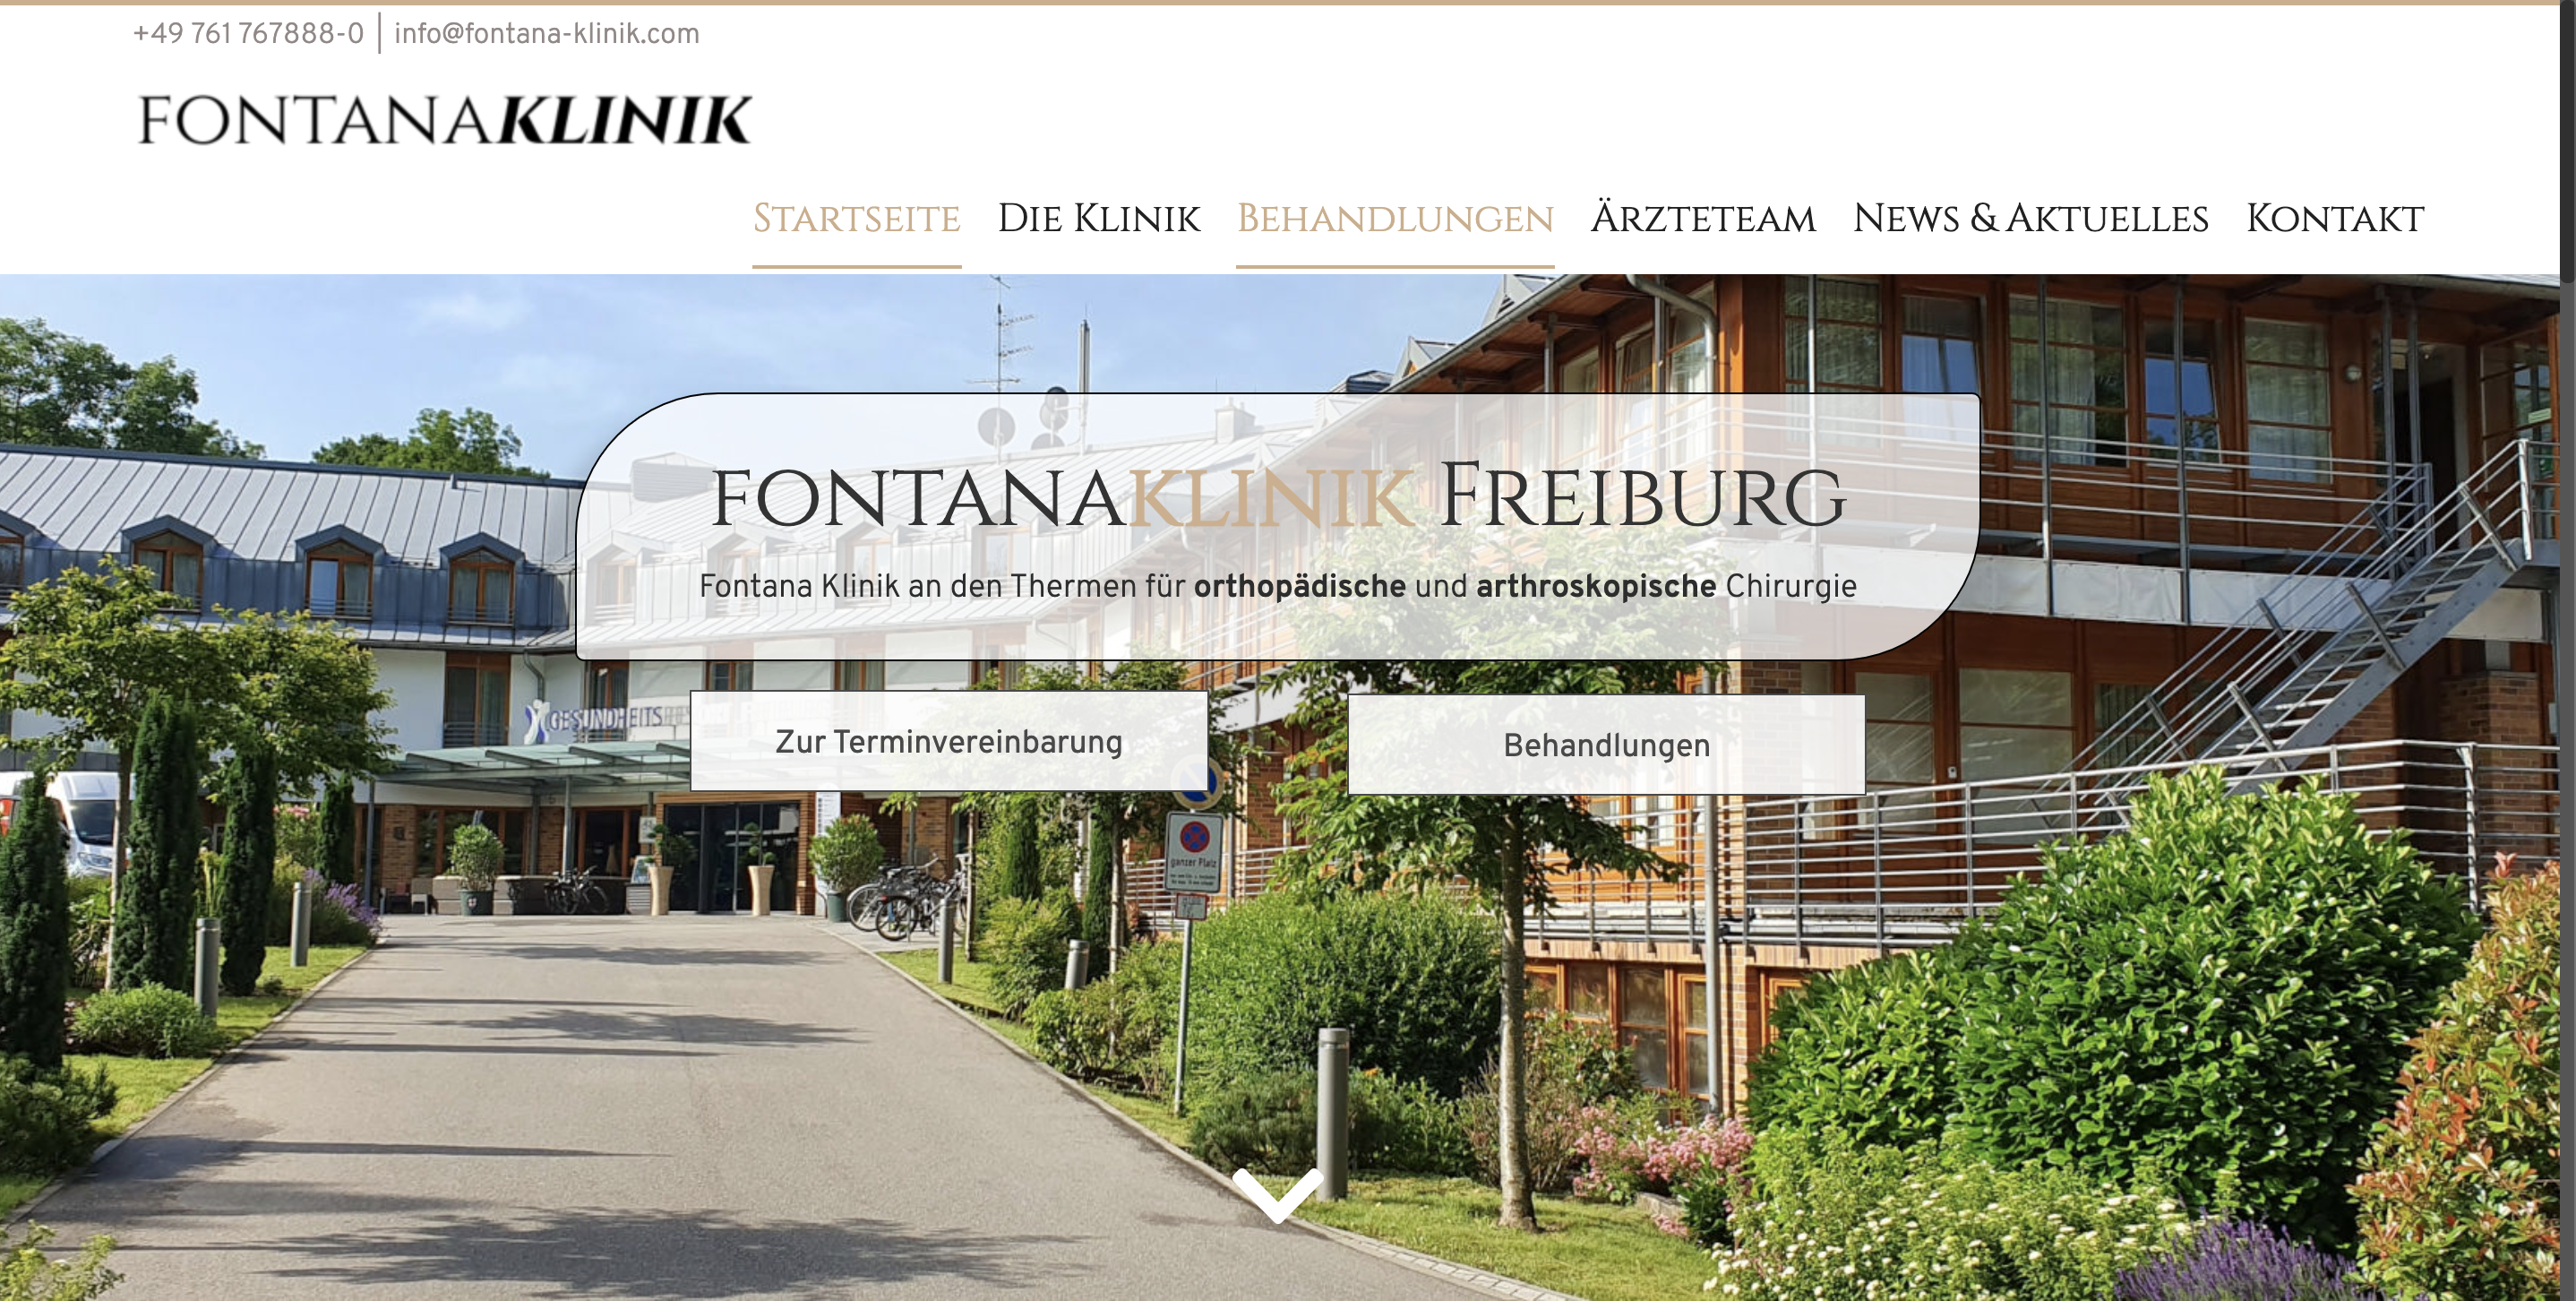 Neue Website Fontana Klinik